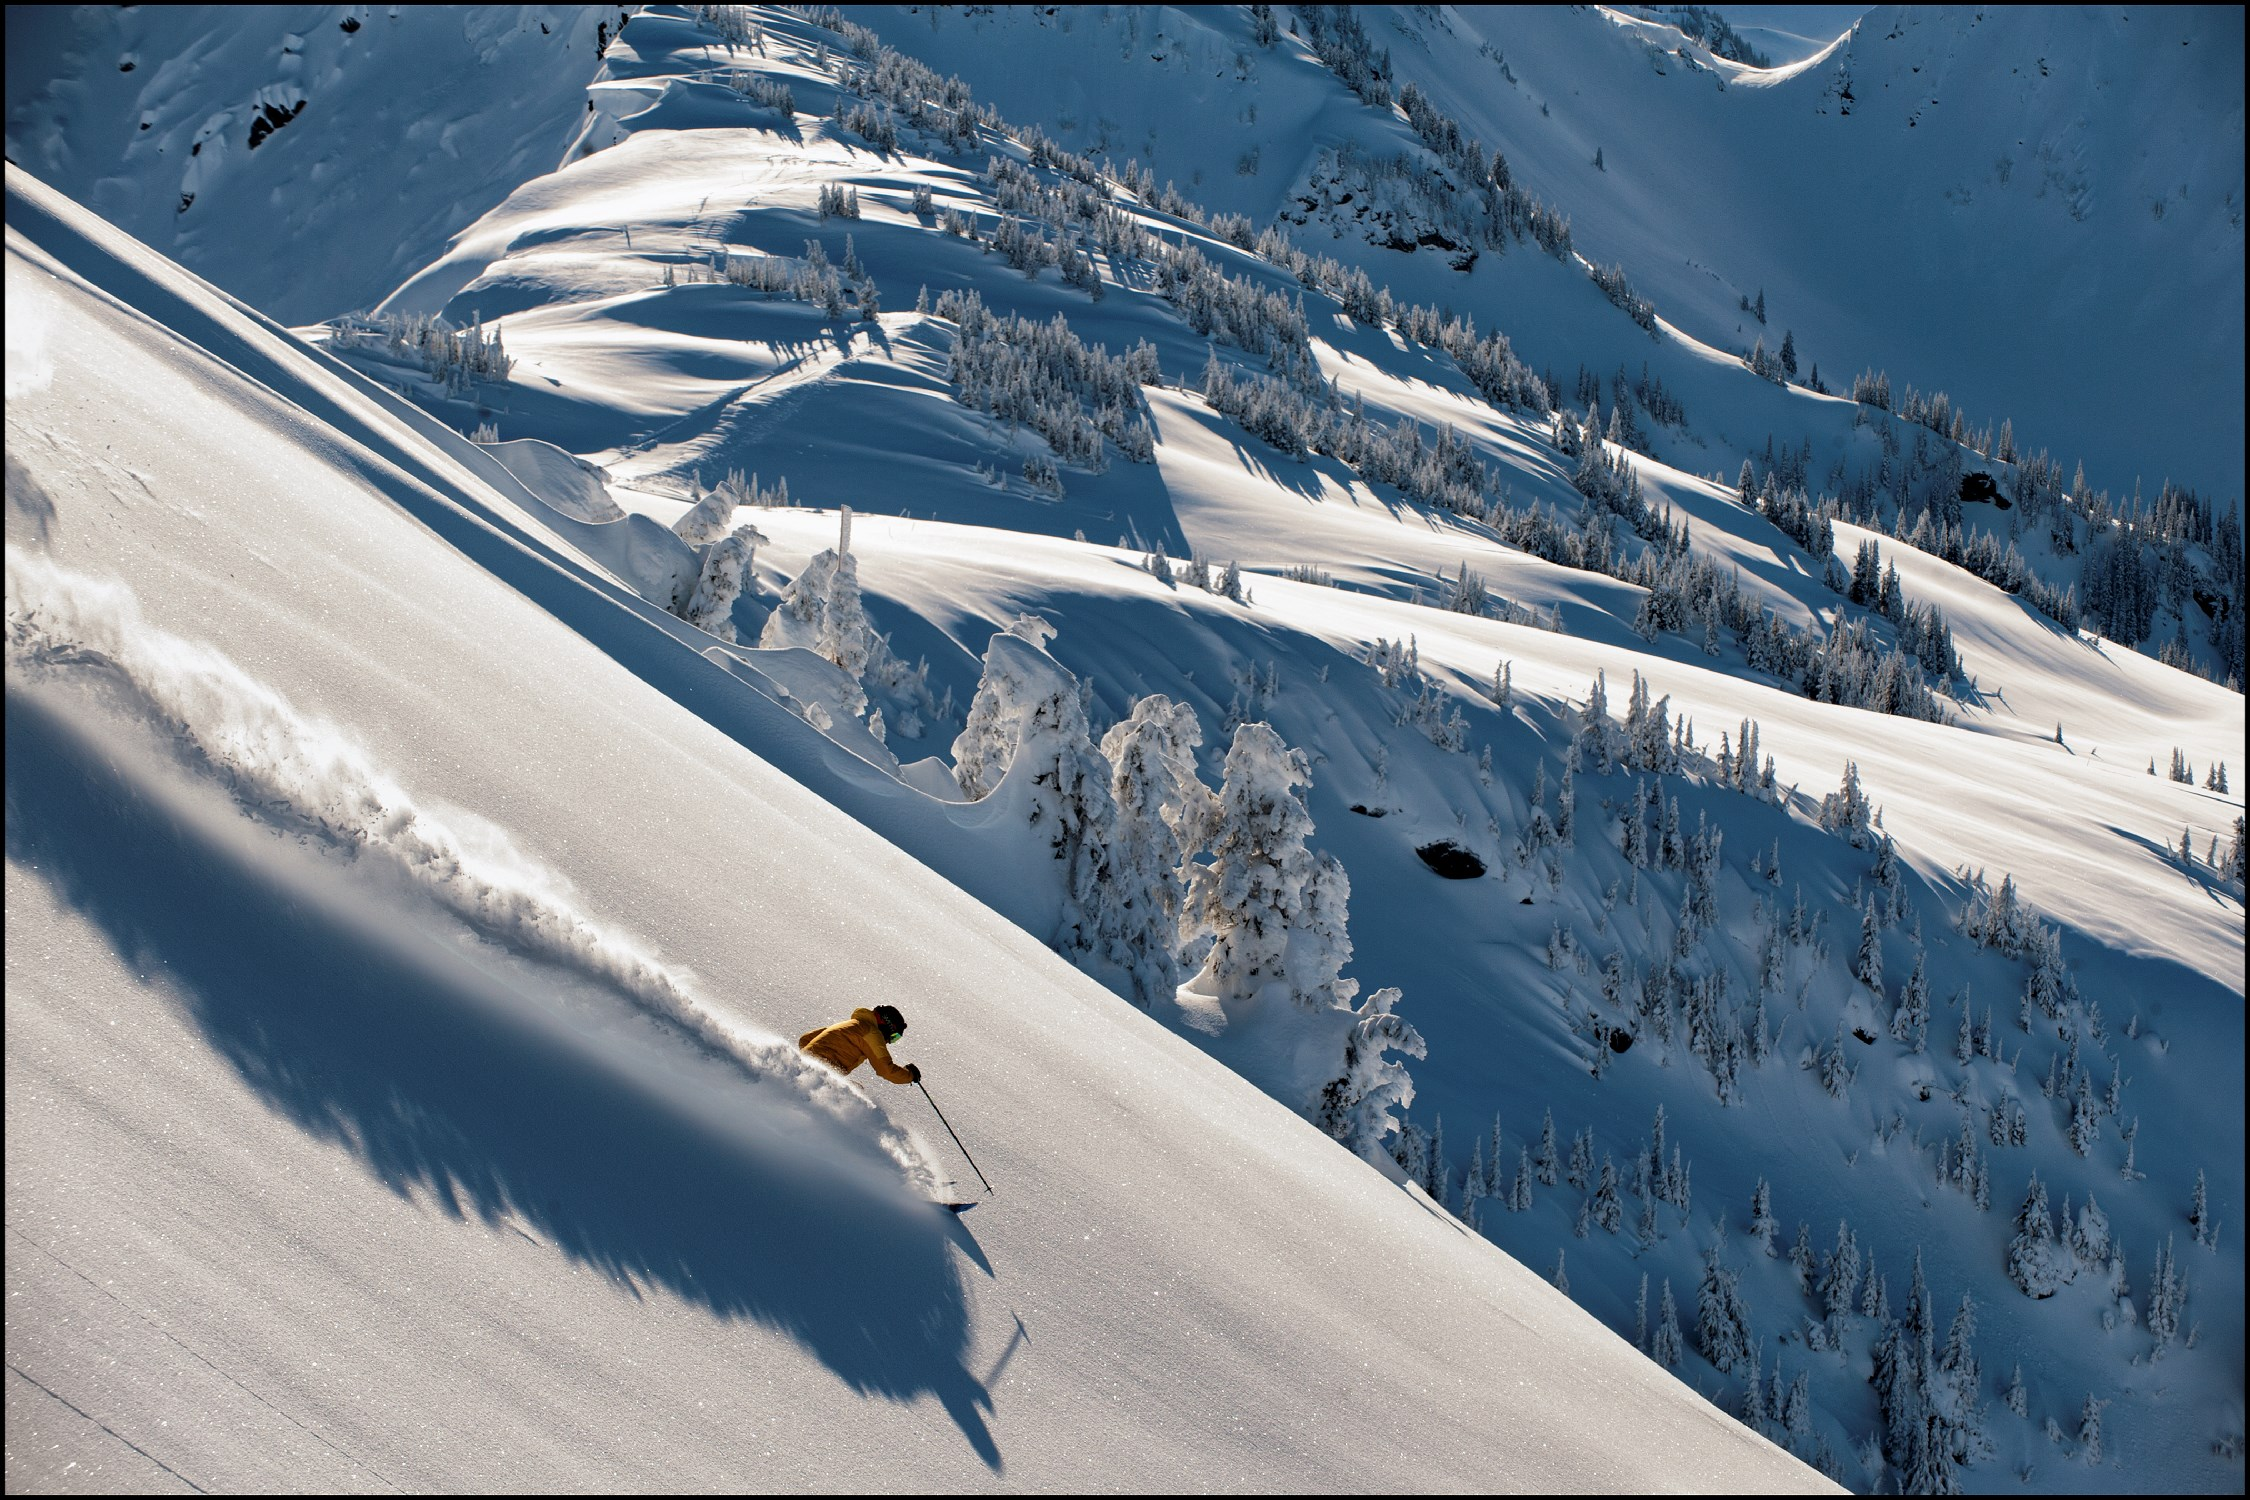 If  Revelstoke Mountain Resort 's big vertical, non-stop fall-line and steady snowfalls look like a helicopter skier's dream, it's no accident. The City of Revelstoke has been an  epicenter for helicopter skiing  since 1978.  Dave Heath | Courtesy Destination BC